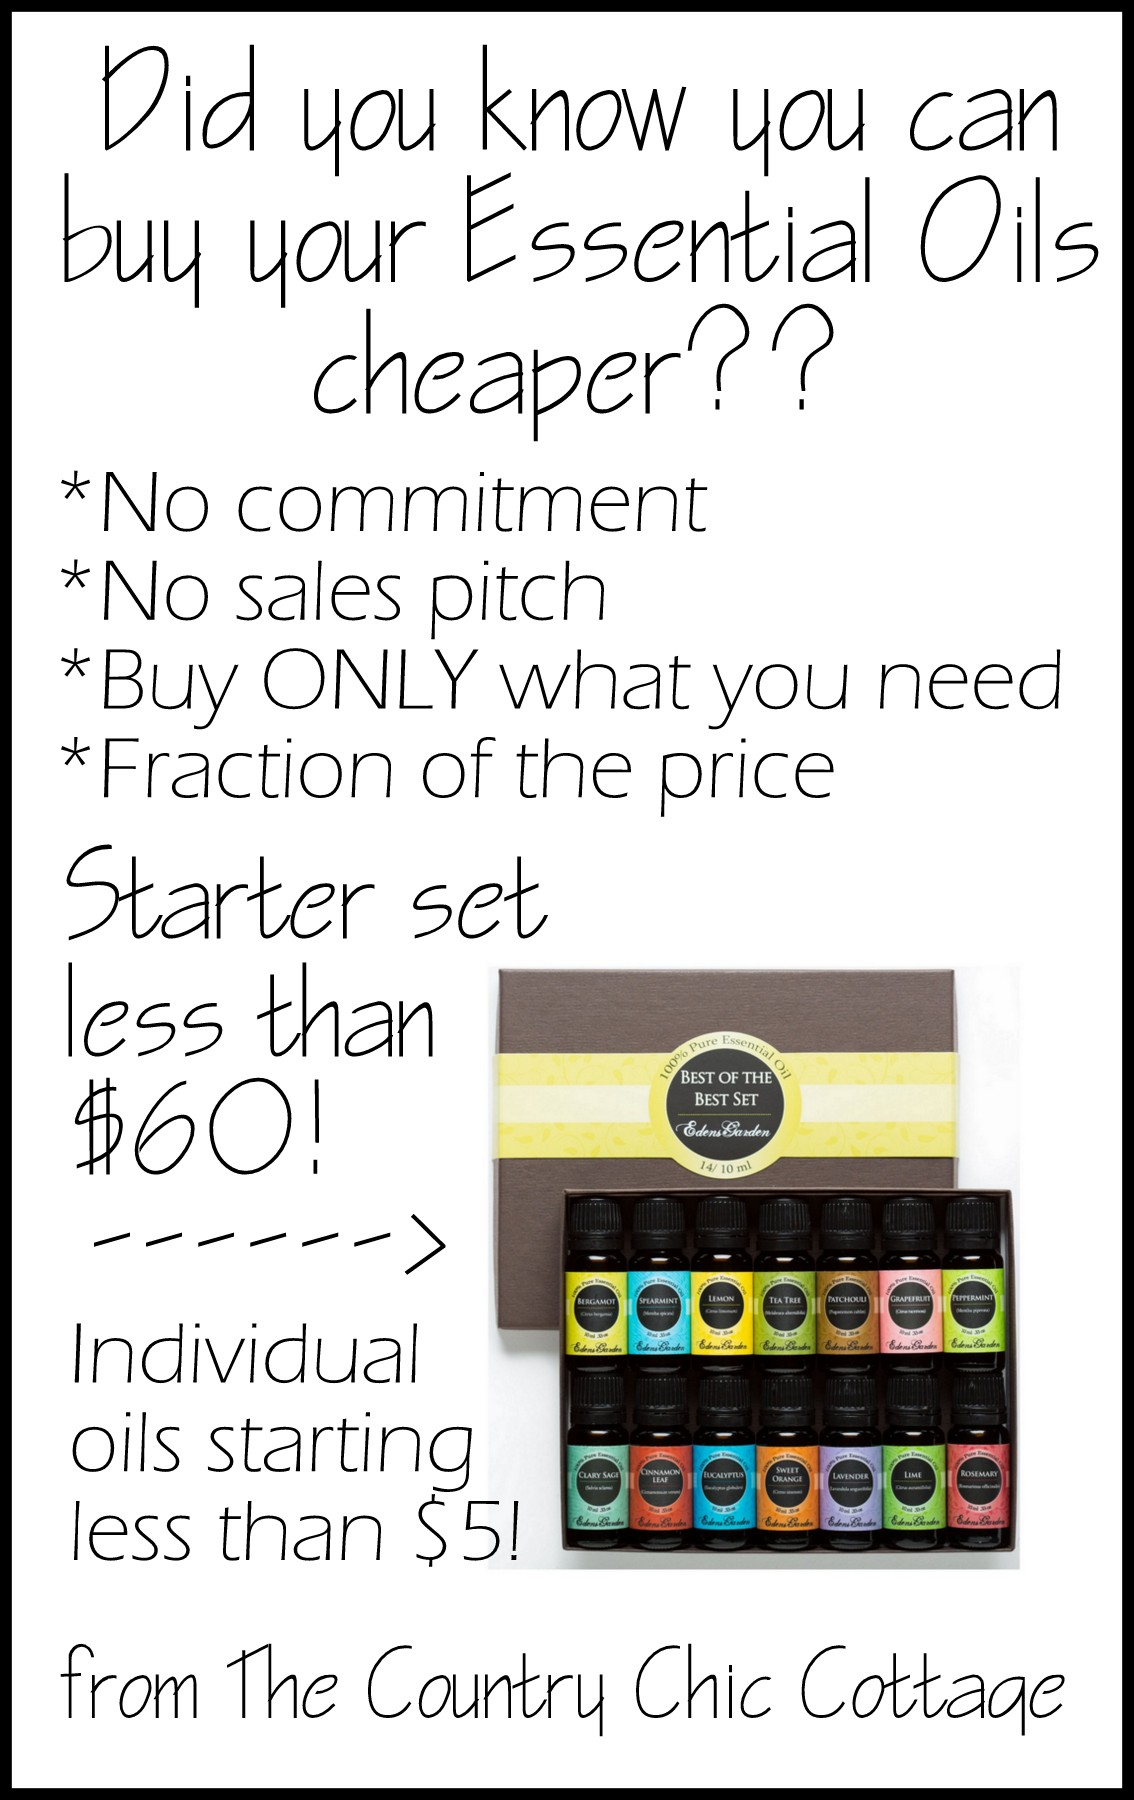 Tired of the sales pitch? Buy your essential oils online with no sales pitch, no commitment, and for a fraction of the cost!